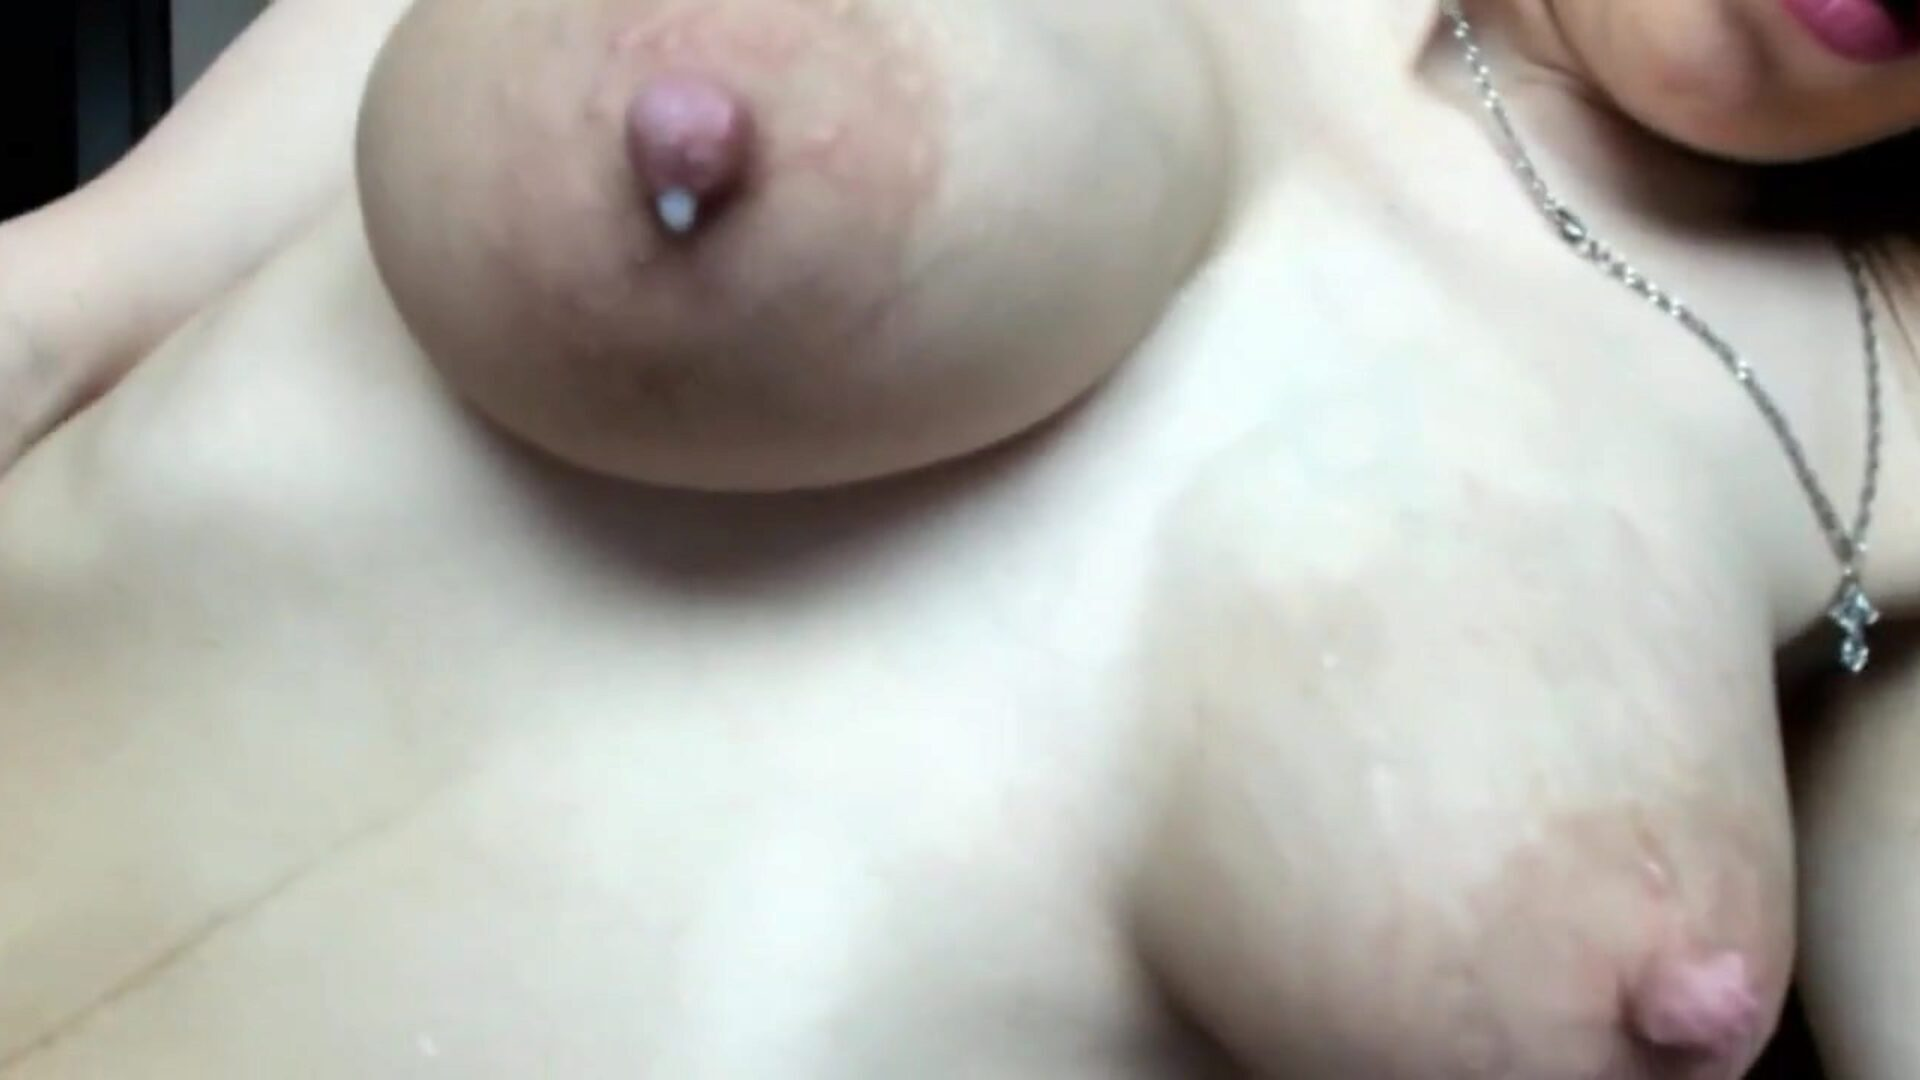 HUGE NATURAL MILK FILLED TITS - DRIPPING, BOUCING, SQUEEZING Young Big Titted hotty squashes juggles her charming milk filled love muffins and milks her self to the verge